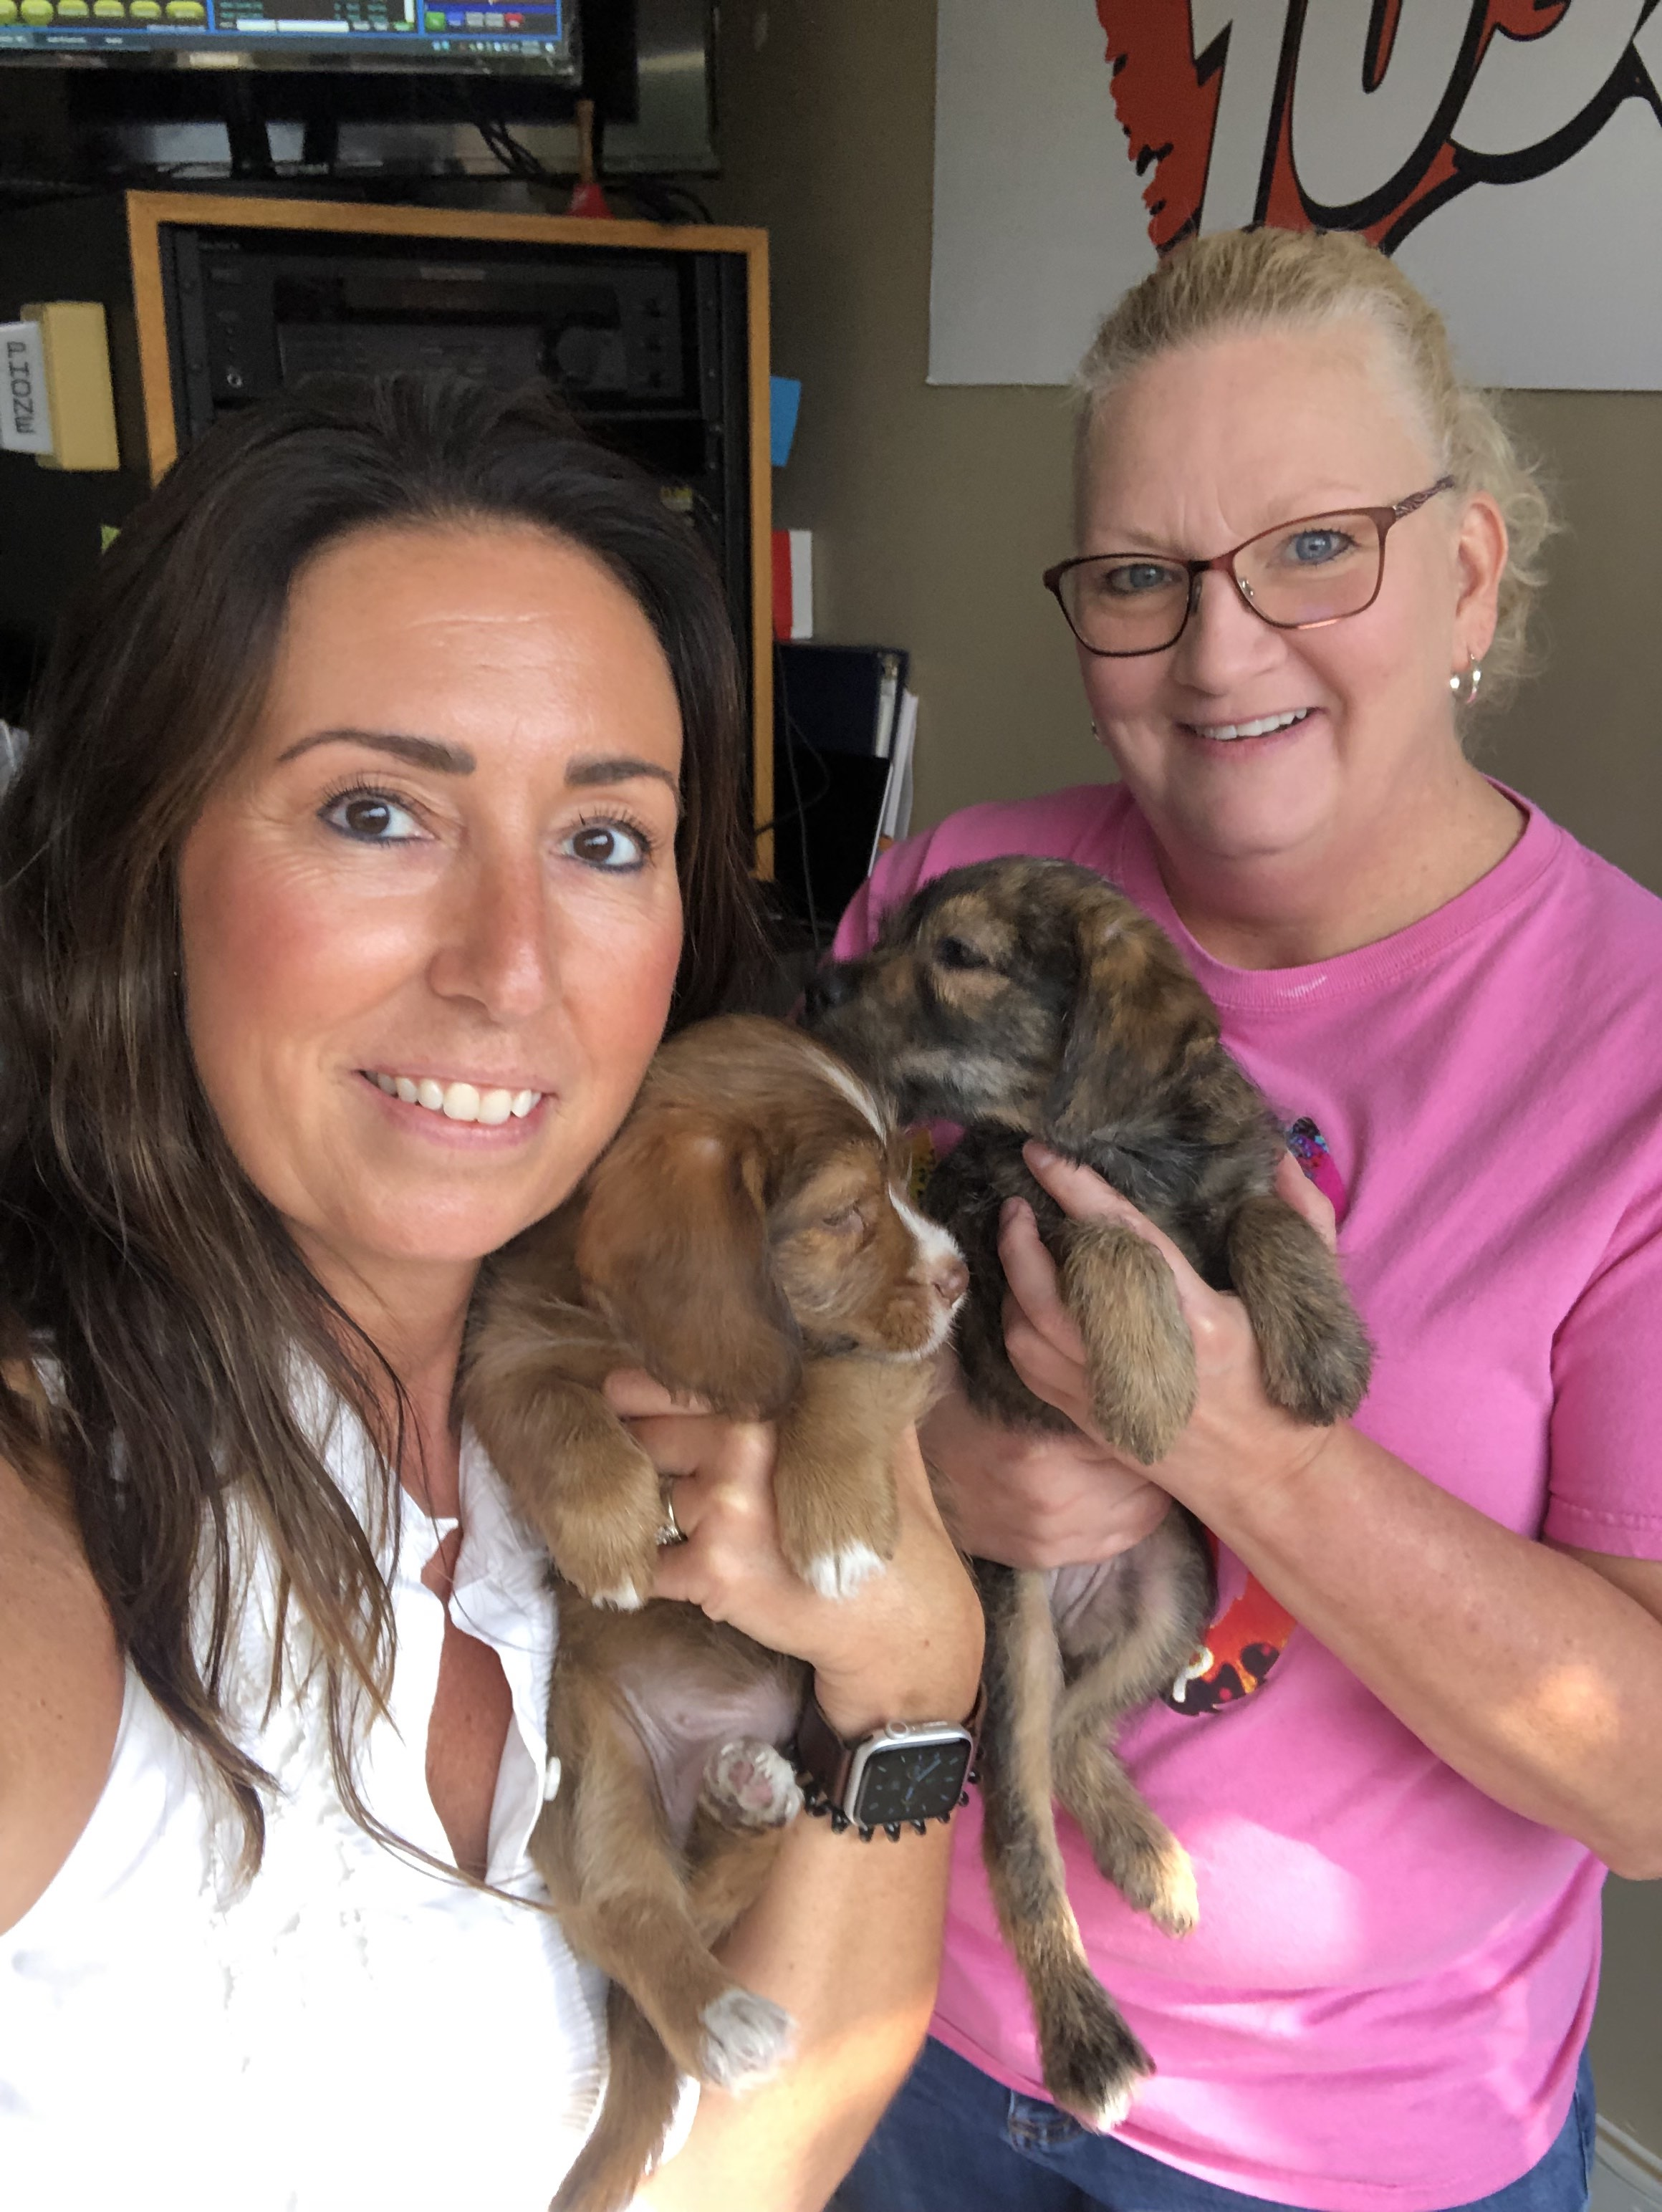 PETS & PAWS: This week we meet a couple of cute puppies